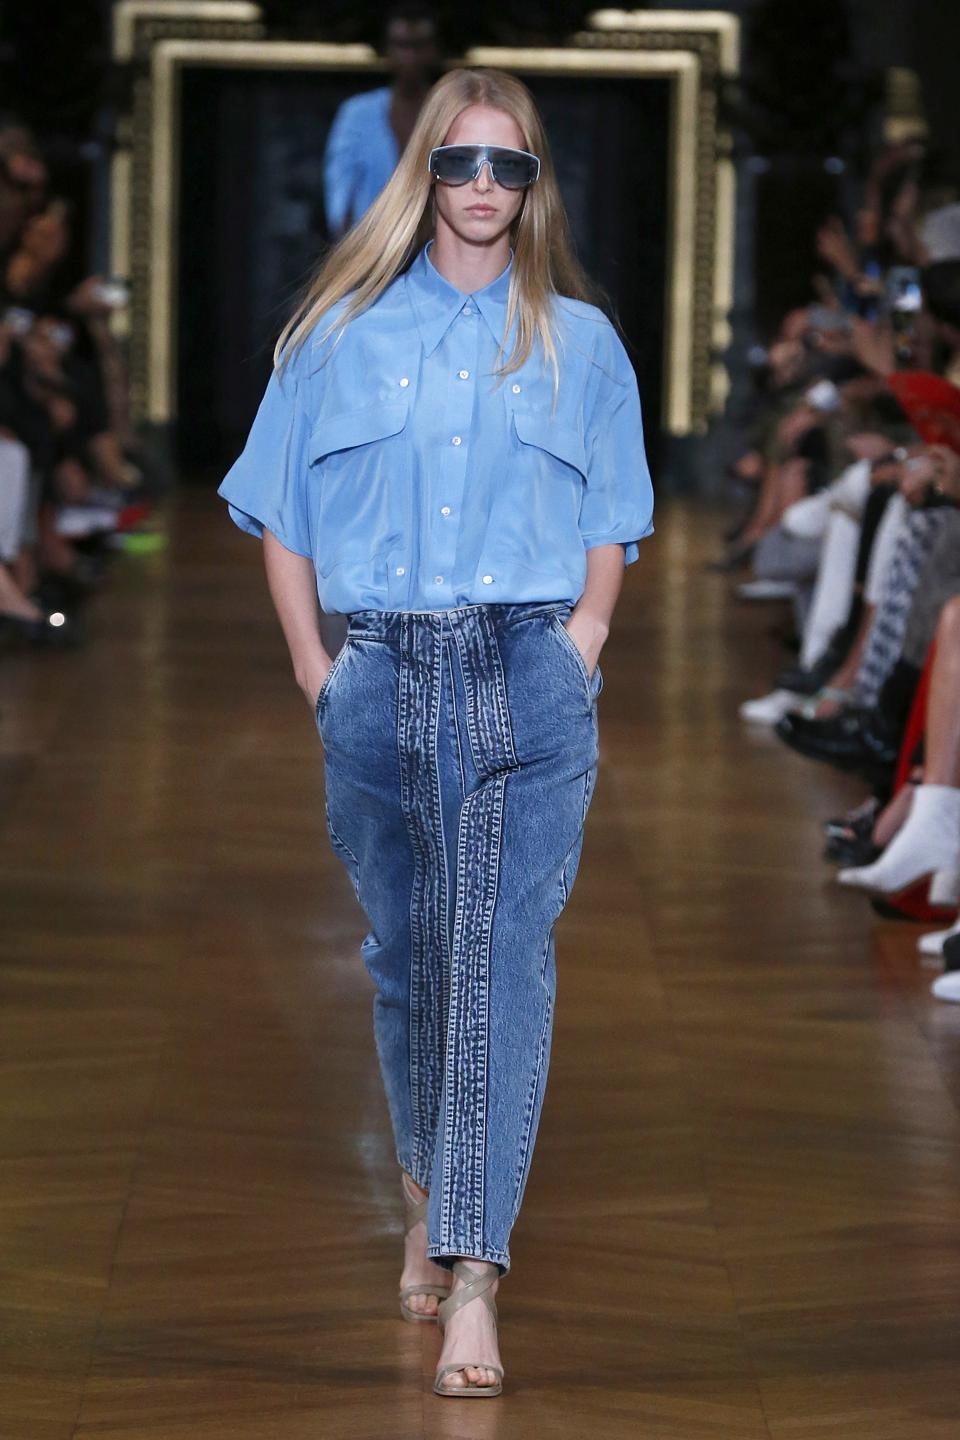 Top 7 Trends From The Spring 7 Fashion Shows